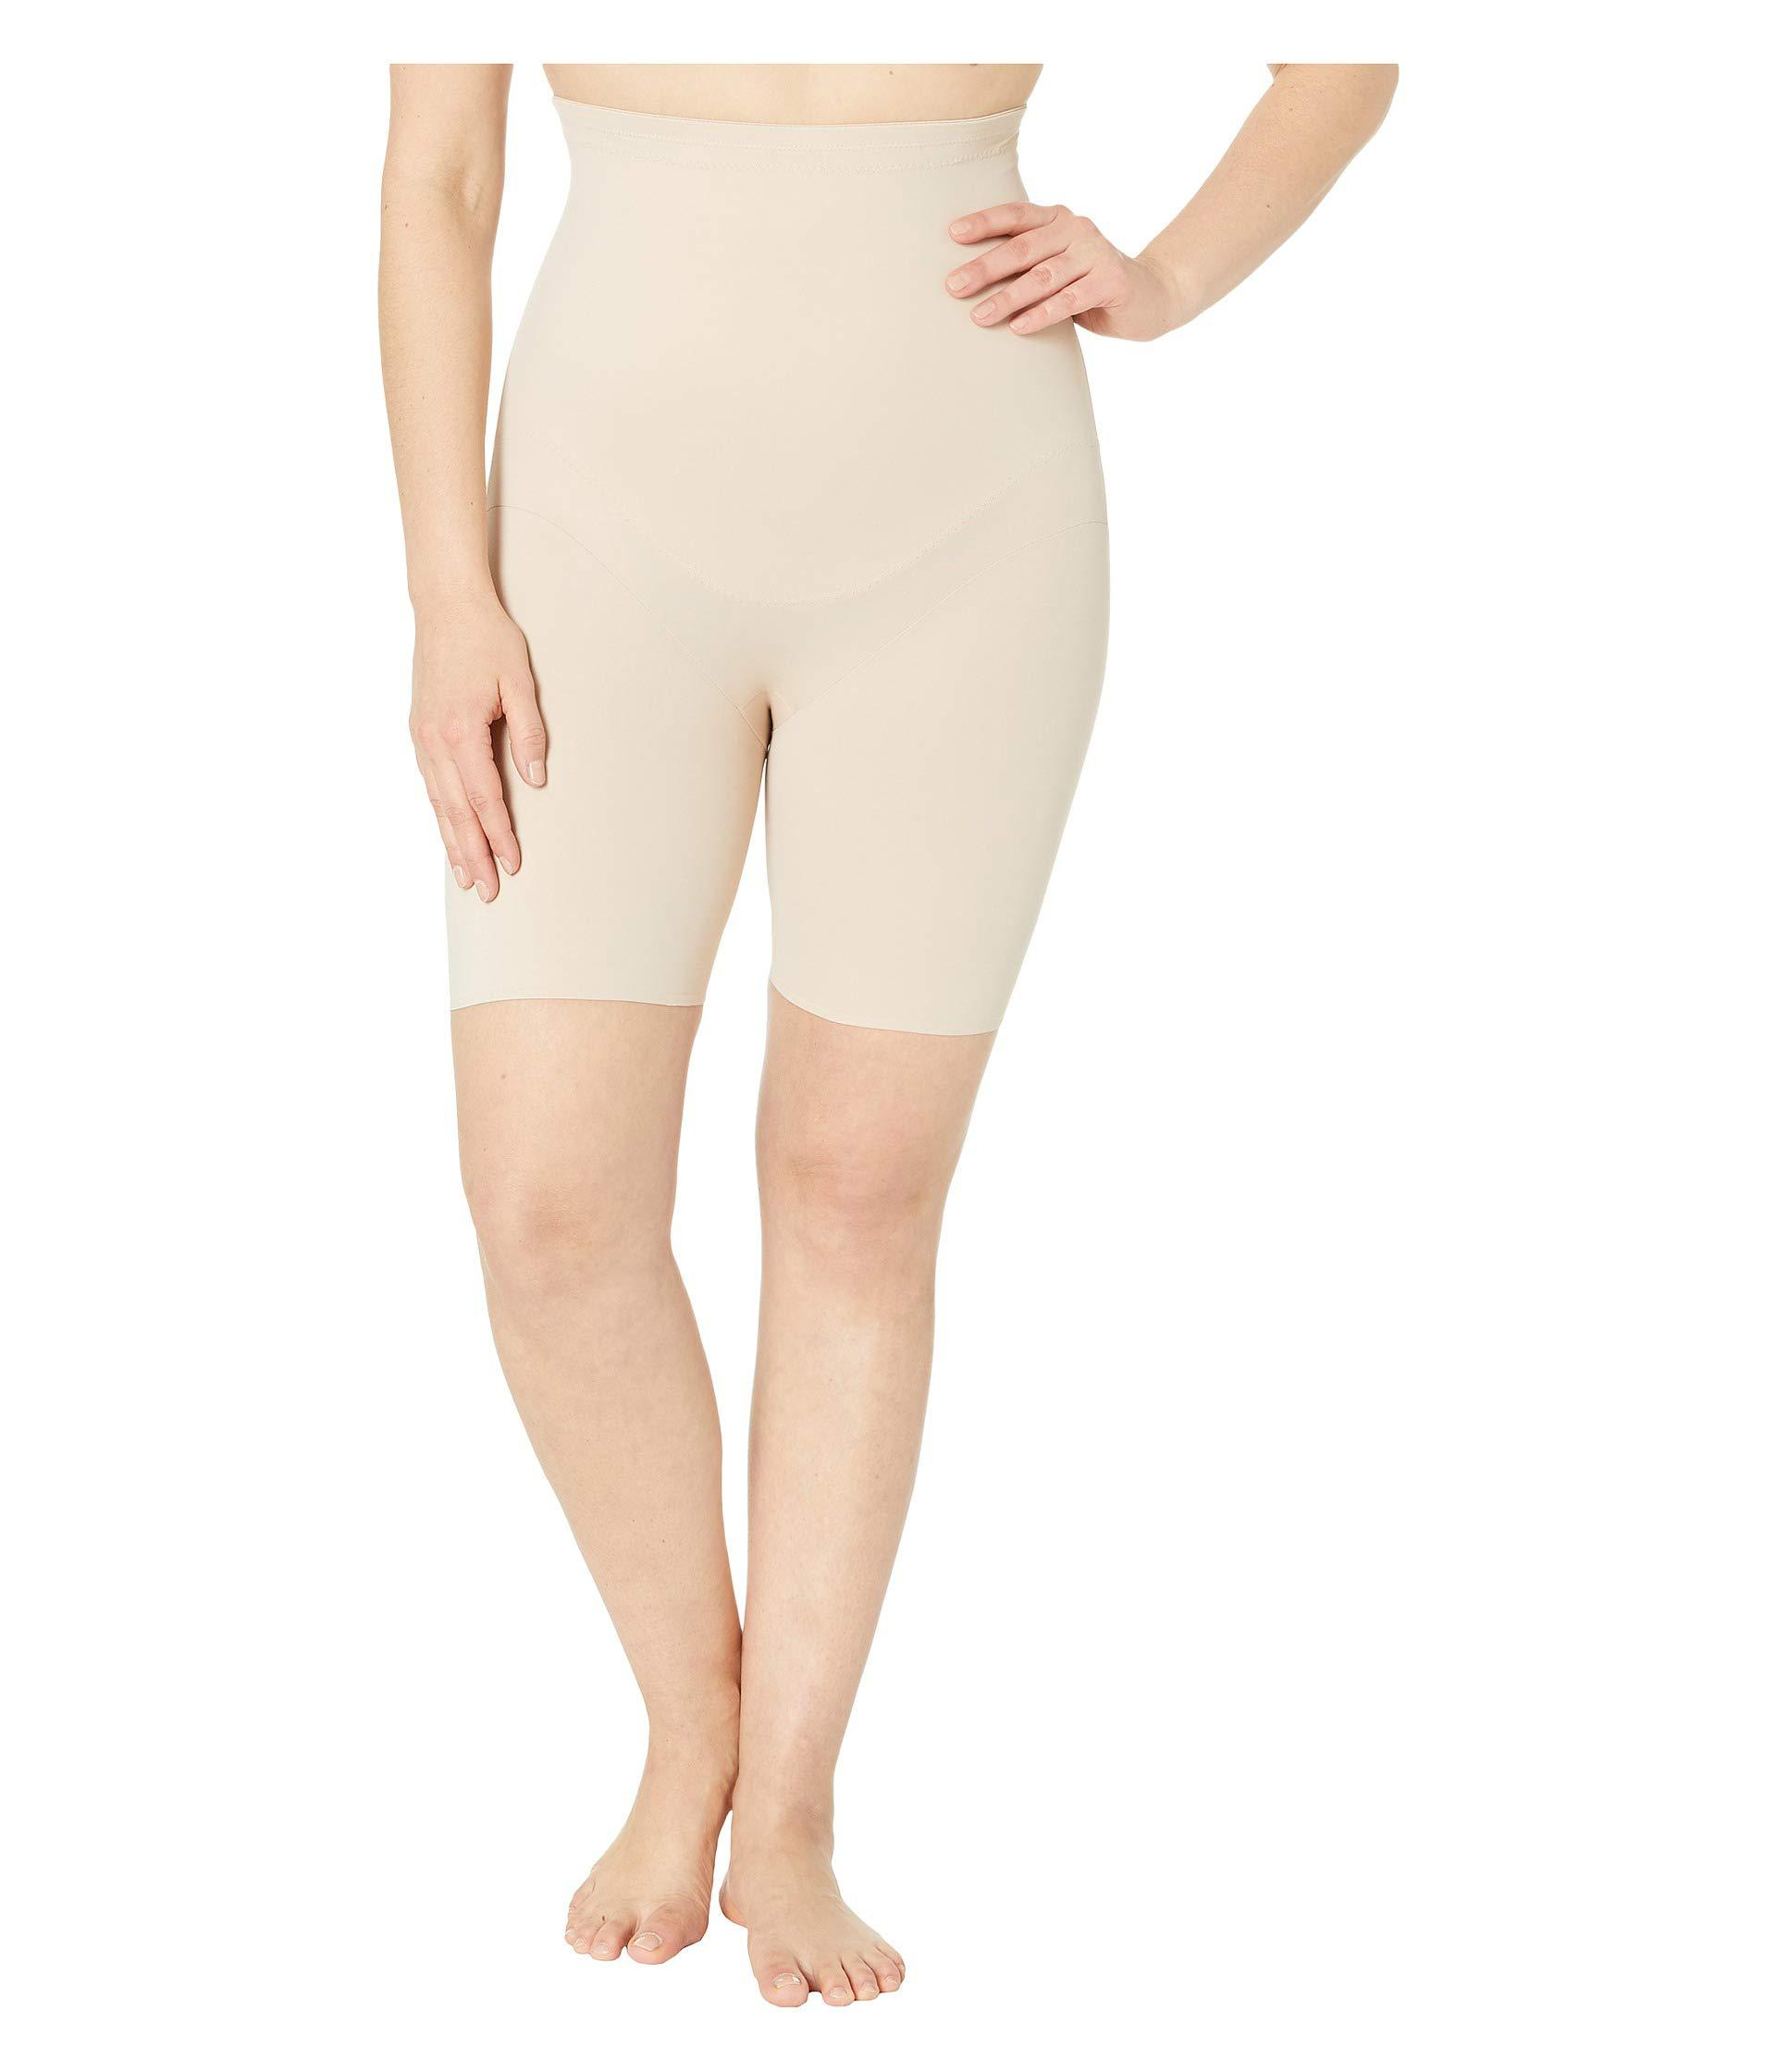 2b6ad07d498 Lyst - Miraclesuit Plus Size Extra Firm Control High-waist Thigh ...